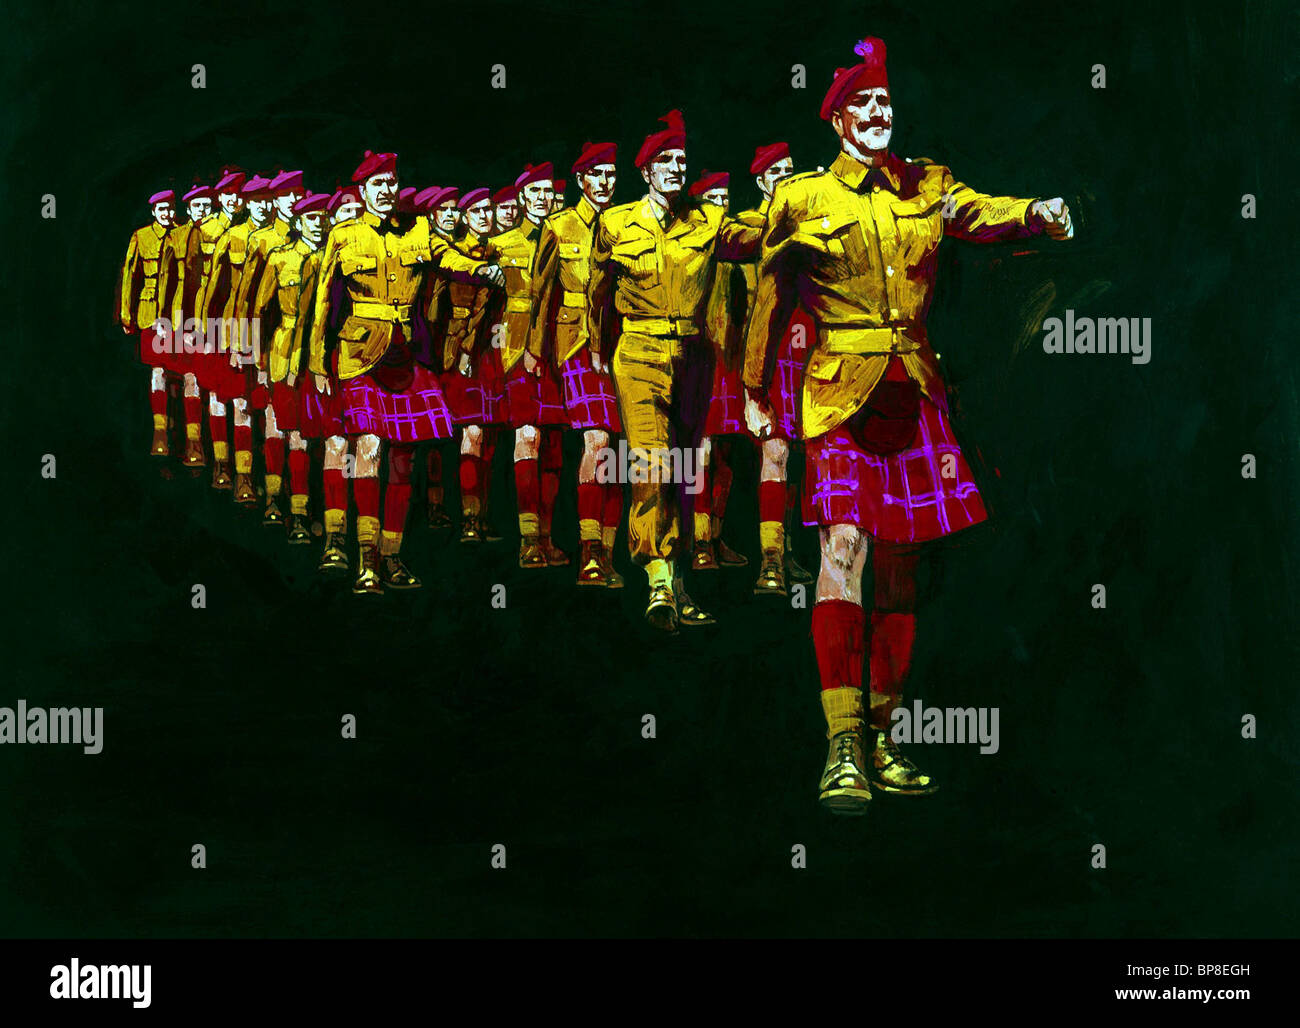 MARCHING SOLDIERS THE DEVIL'S BRIGADE (1968) - Stock Image